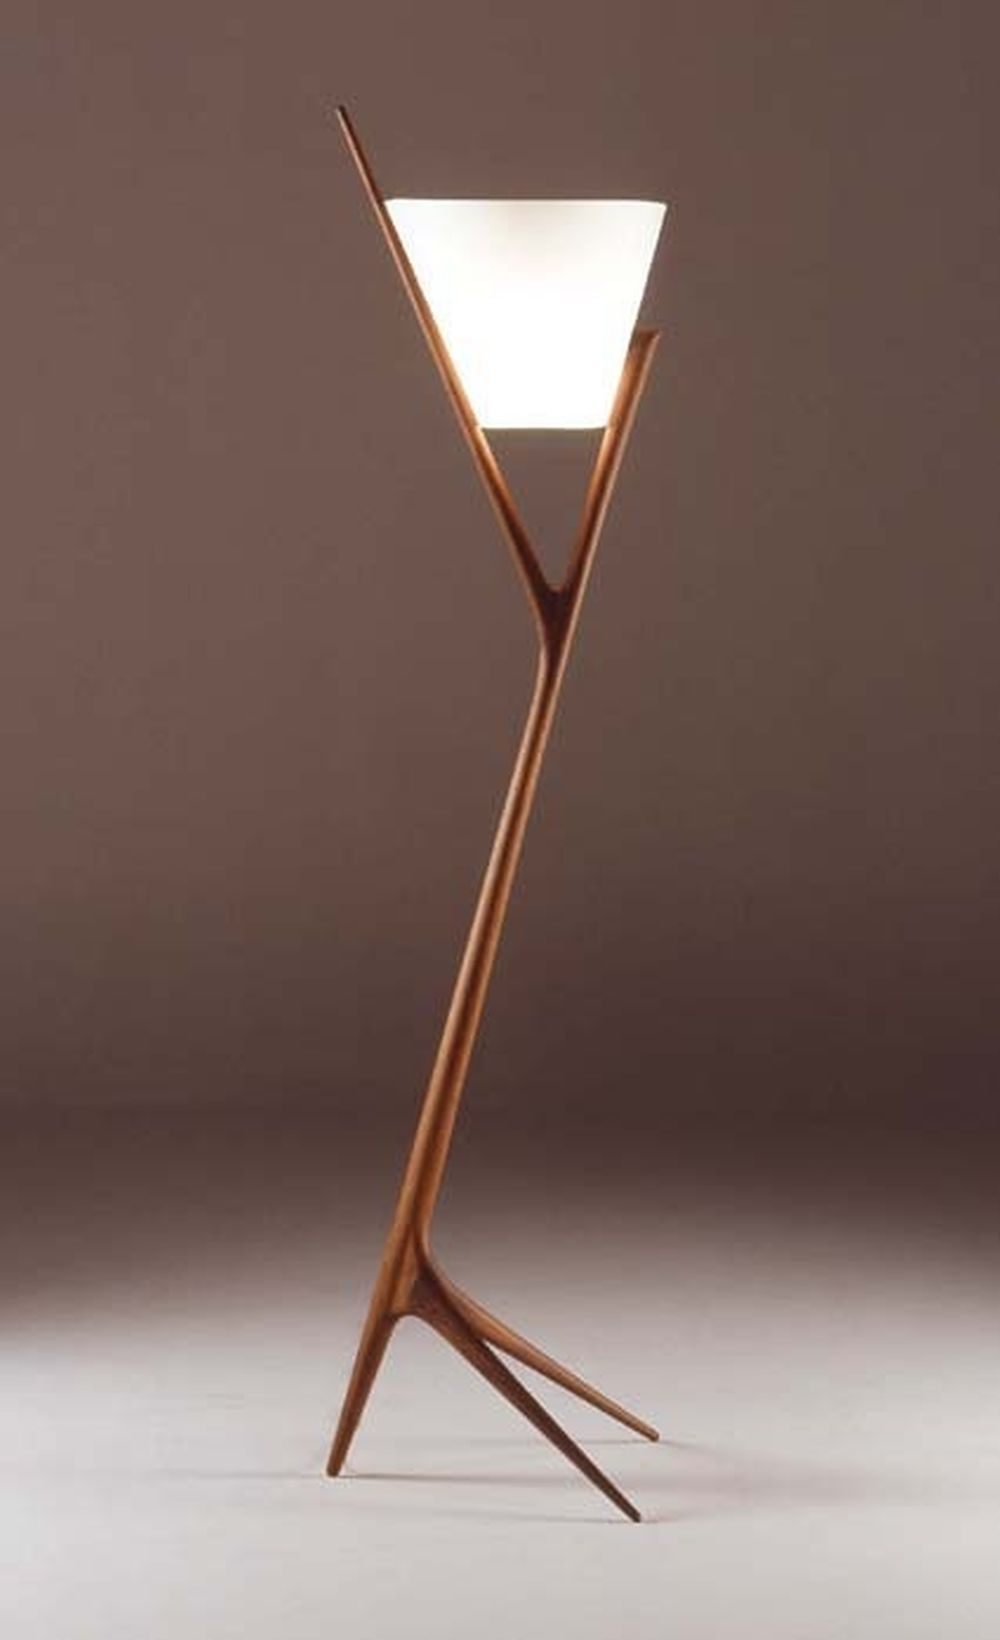 Vjeranski lamp made by noriyuki ebina japanese furniture